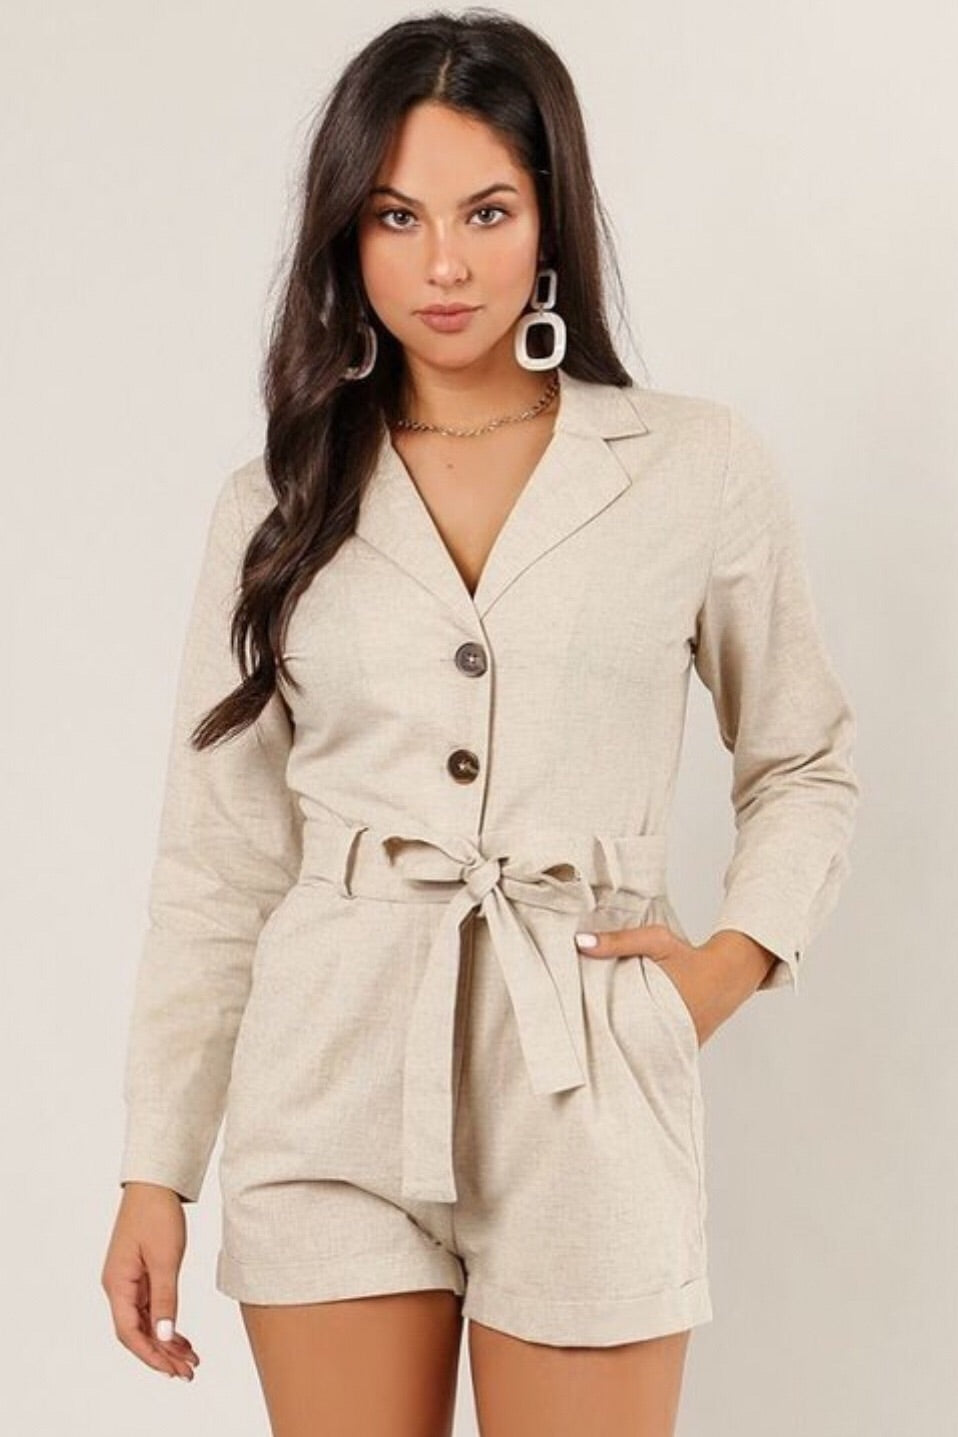 Button It Up Easy Romper